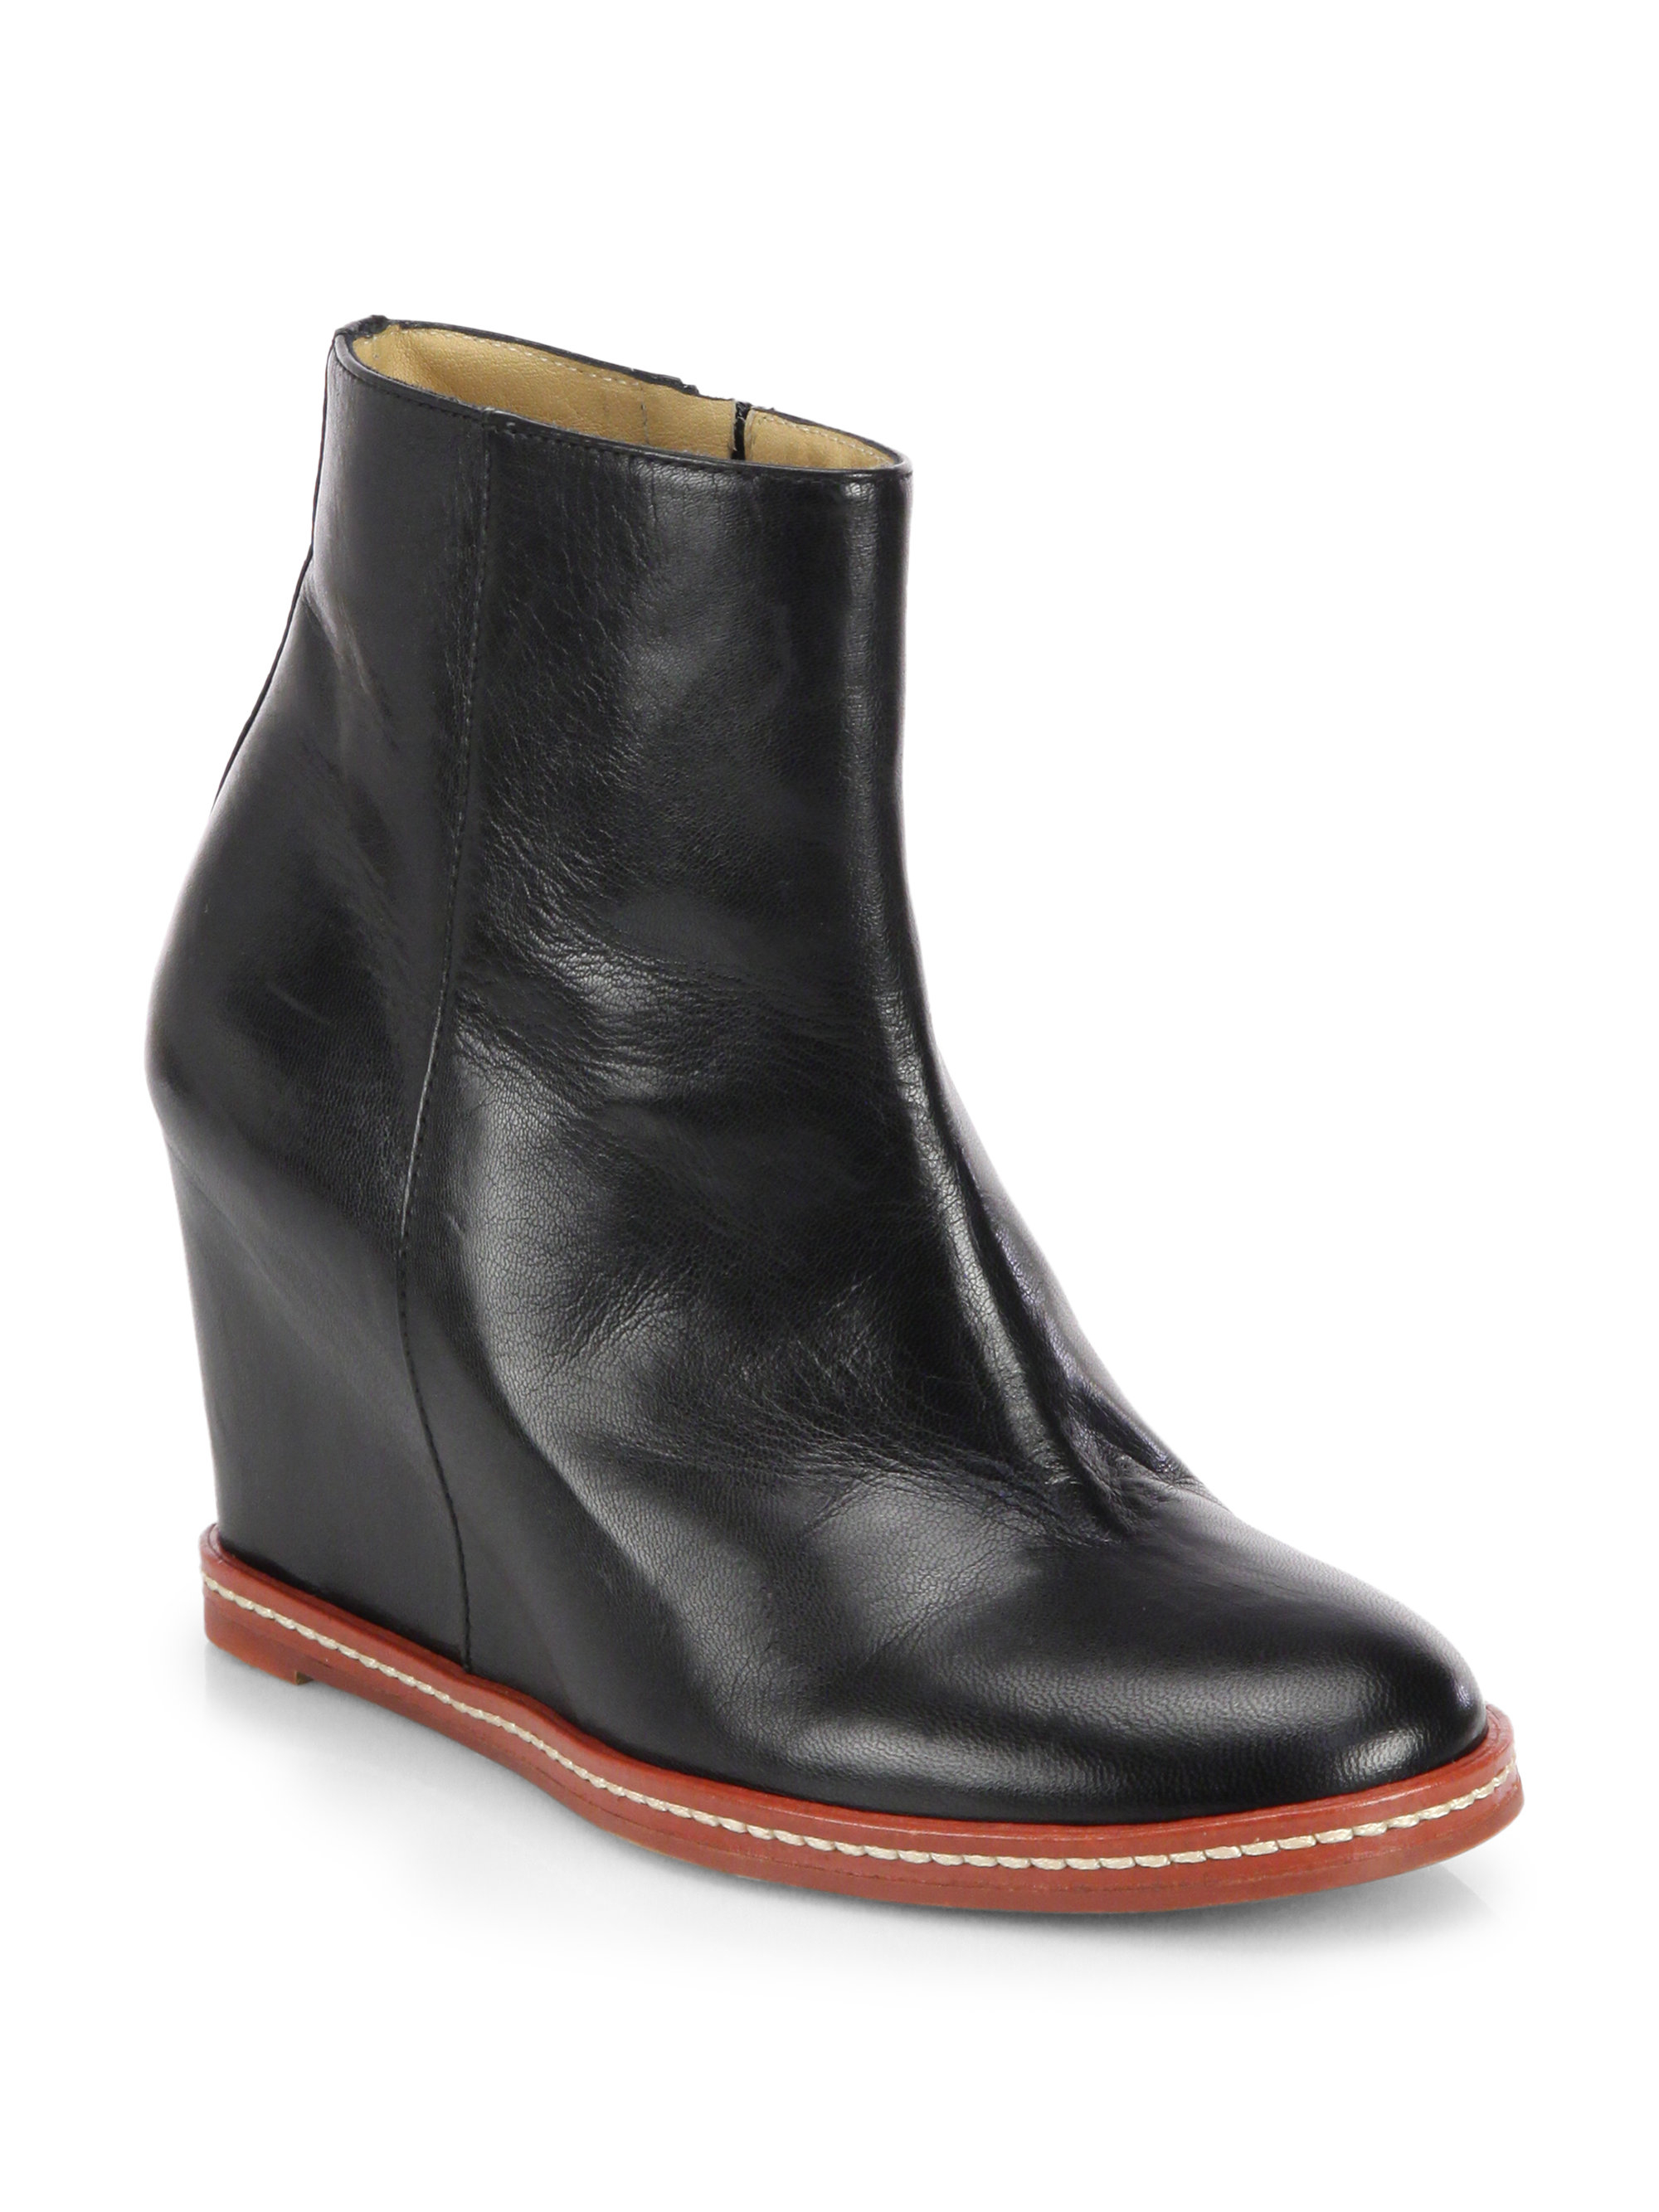 Mm6 by maison martin margiela Leather Hidden Wedge Ankle Boots in ...